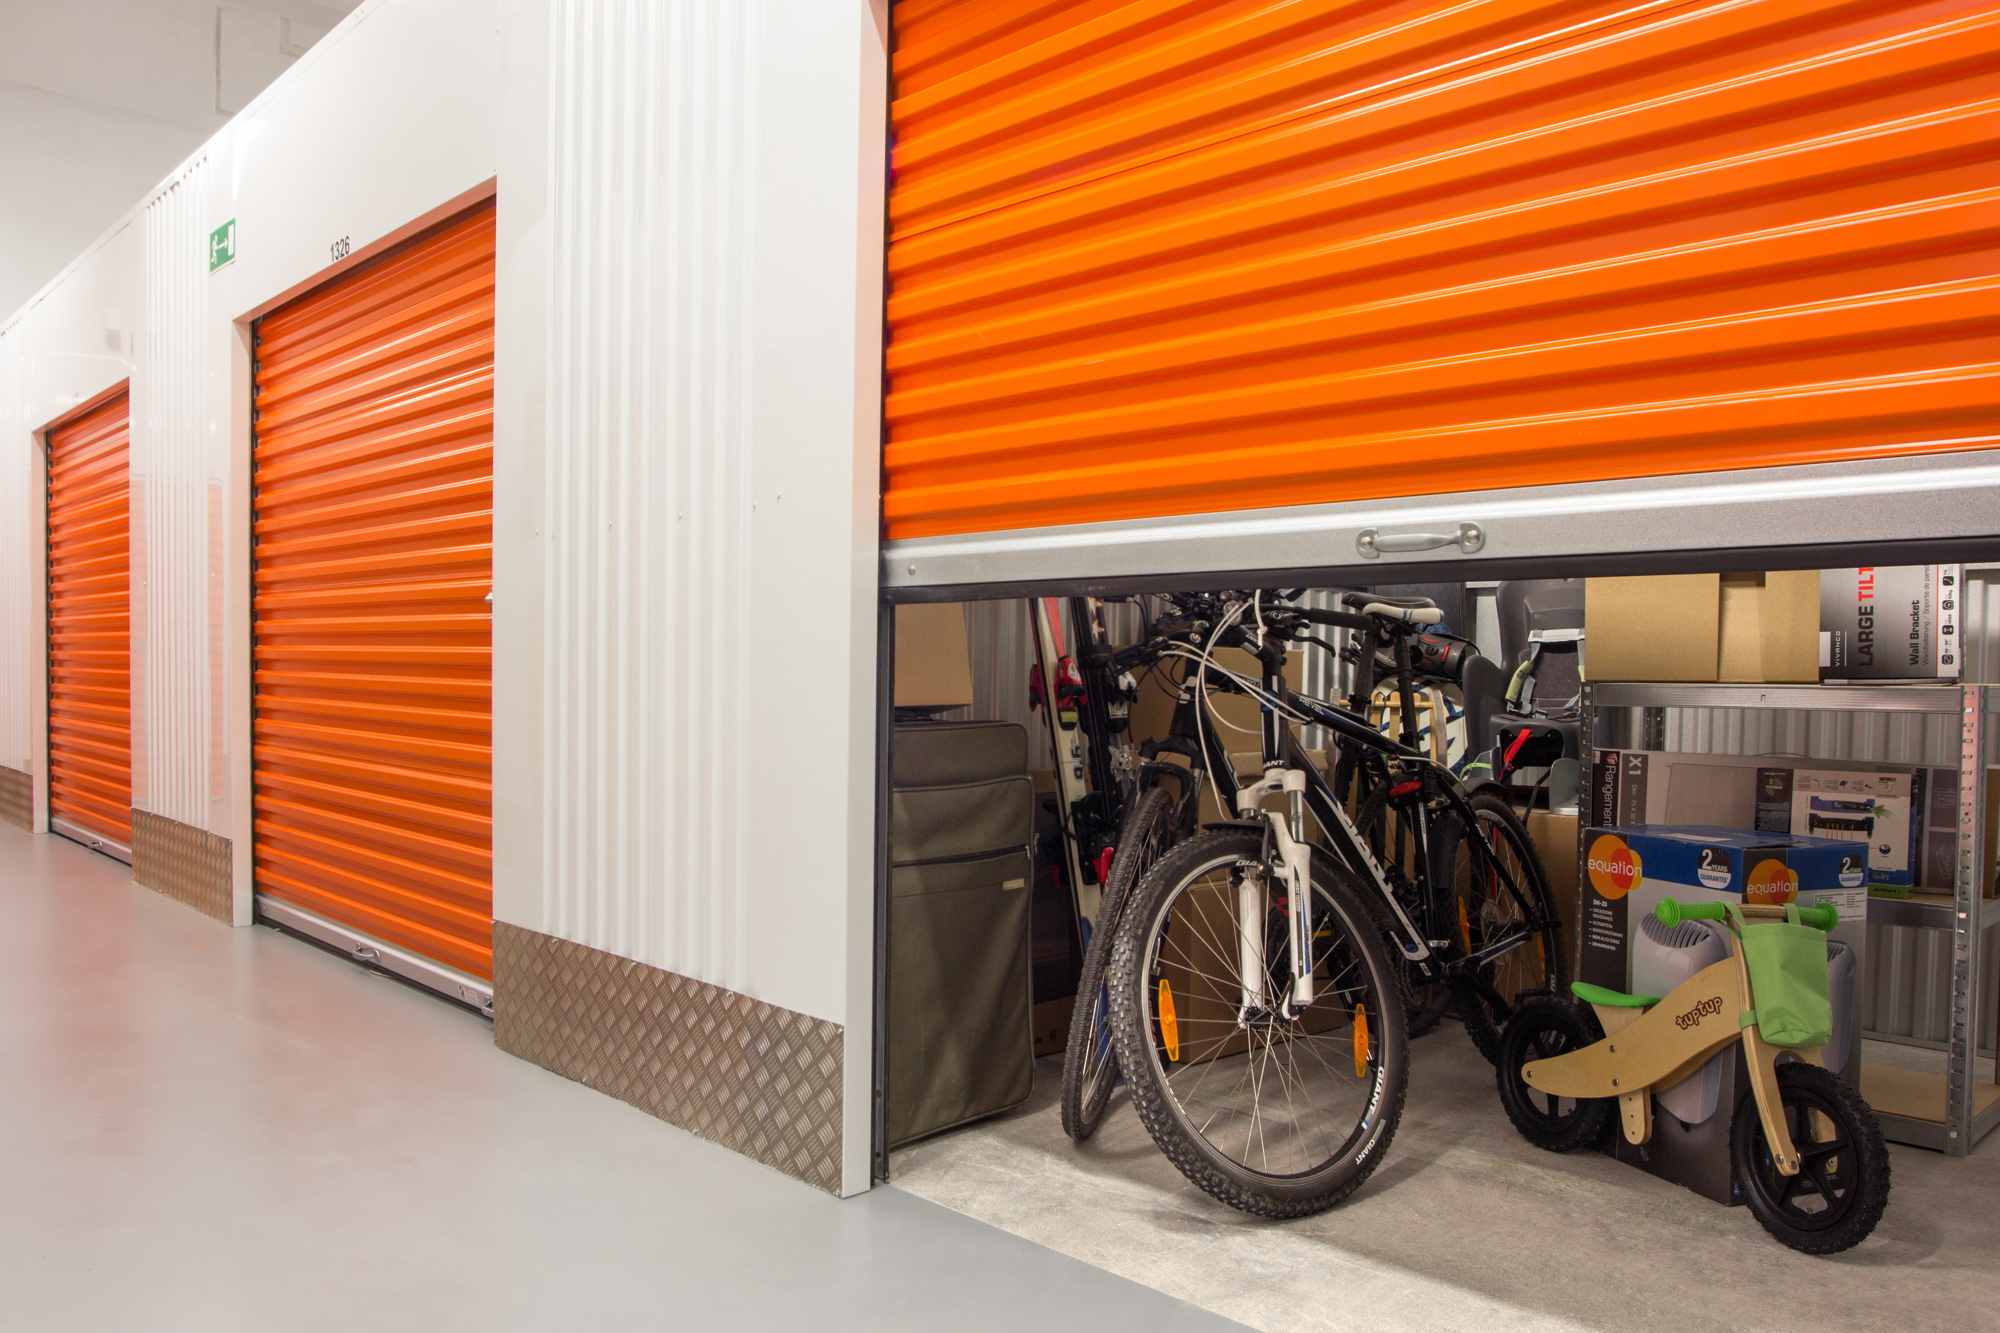 an image of a half open self storage unit